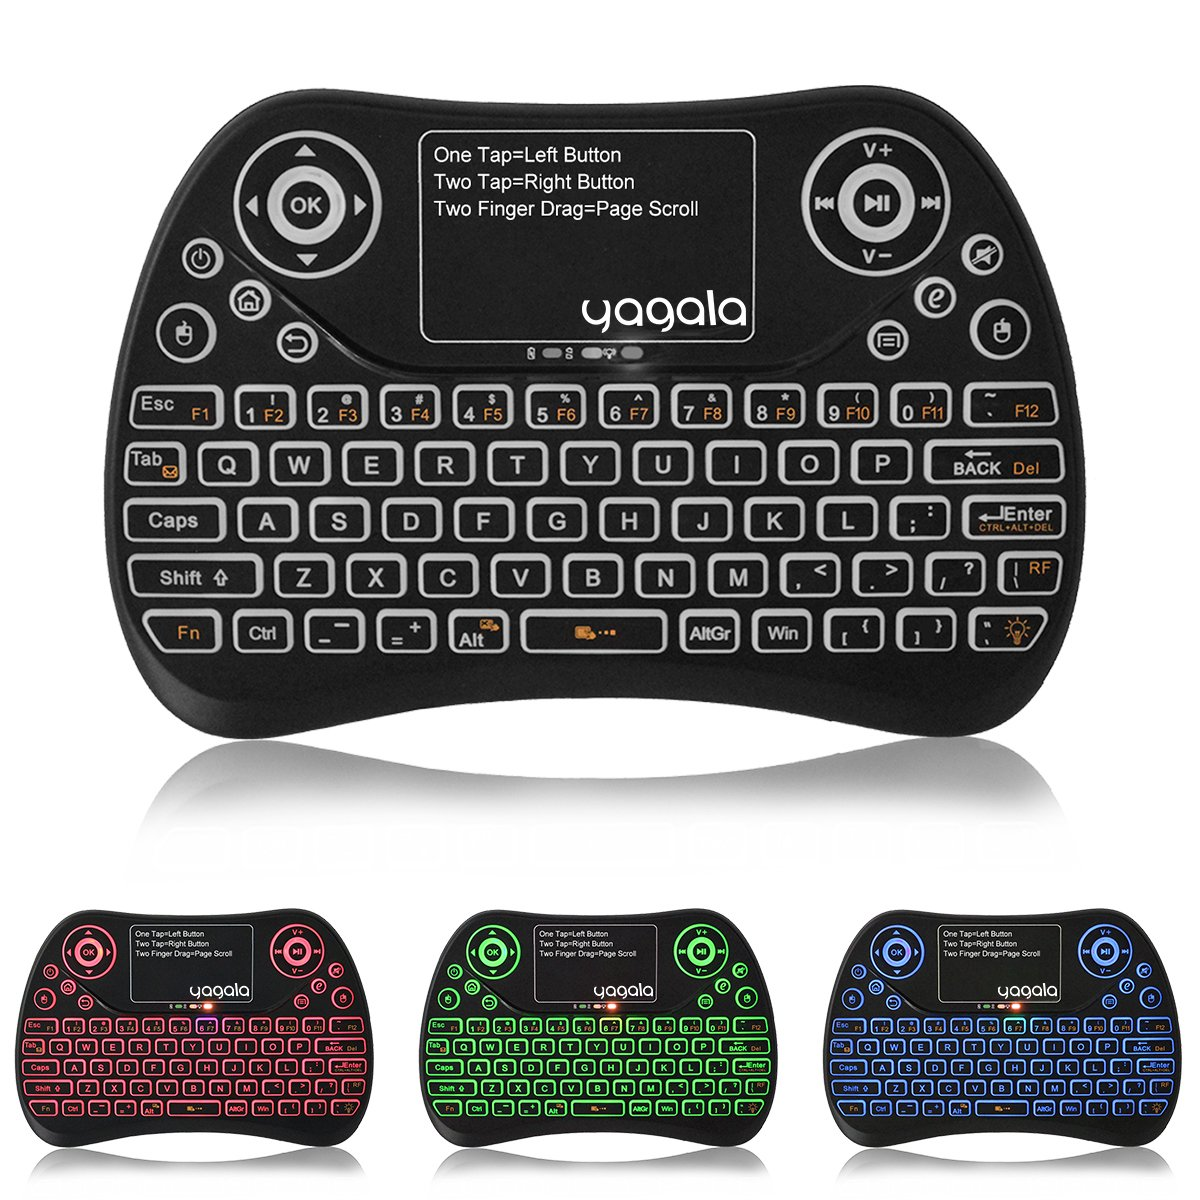 YAGALA Backlit Mini Wireless Keyboard with Touchpad 2.4G Rechargeable Backlit Handheld Remote Control Keyboard and Mouse Combo with Multimedia Keys for Android TV Box, PC, PAD, Smart TV, X-Box, HTPC by YAGALA